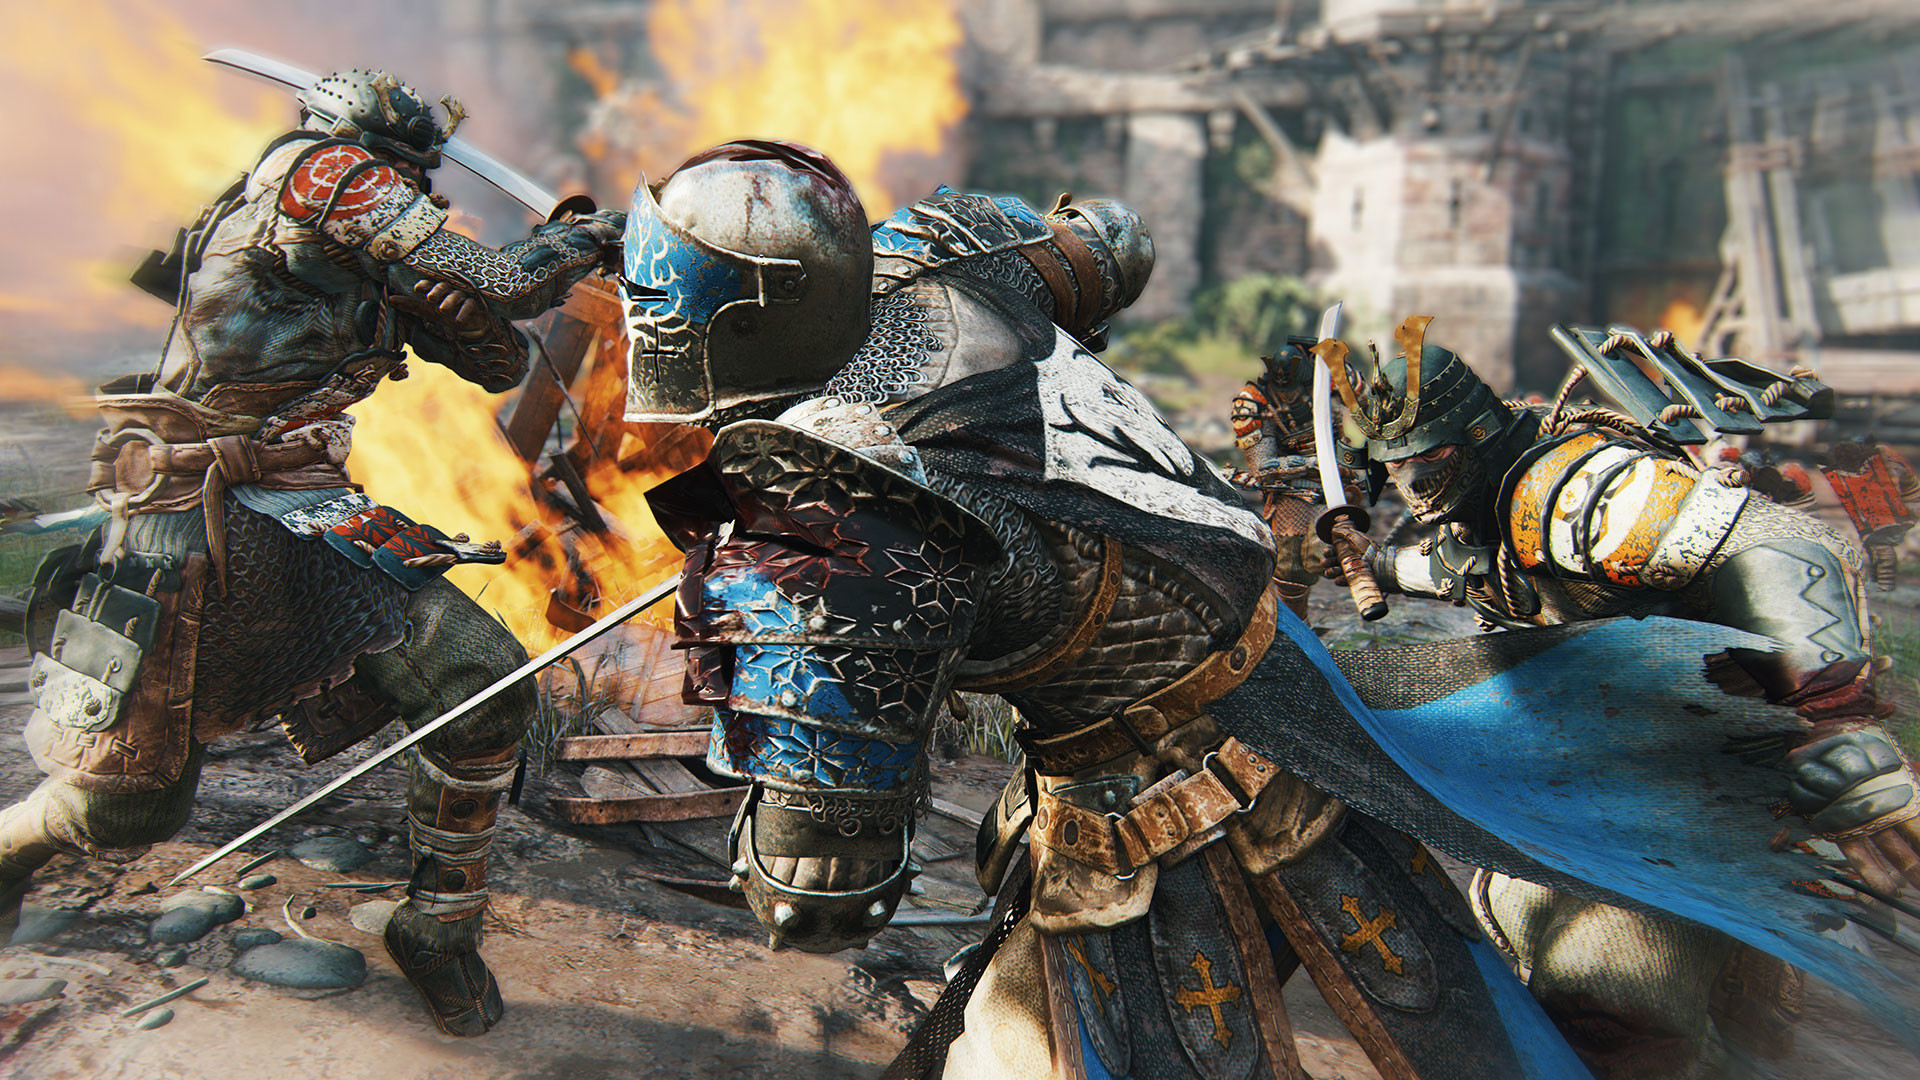 Res: 1920x1080, For Honor 4K Wallpaper ...